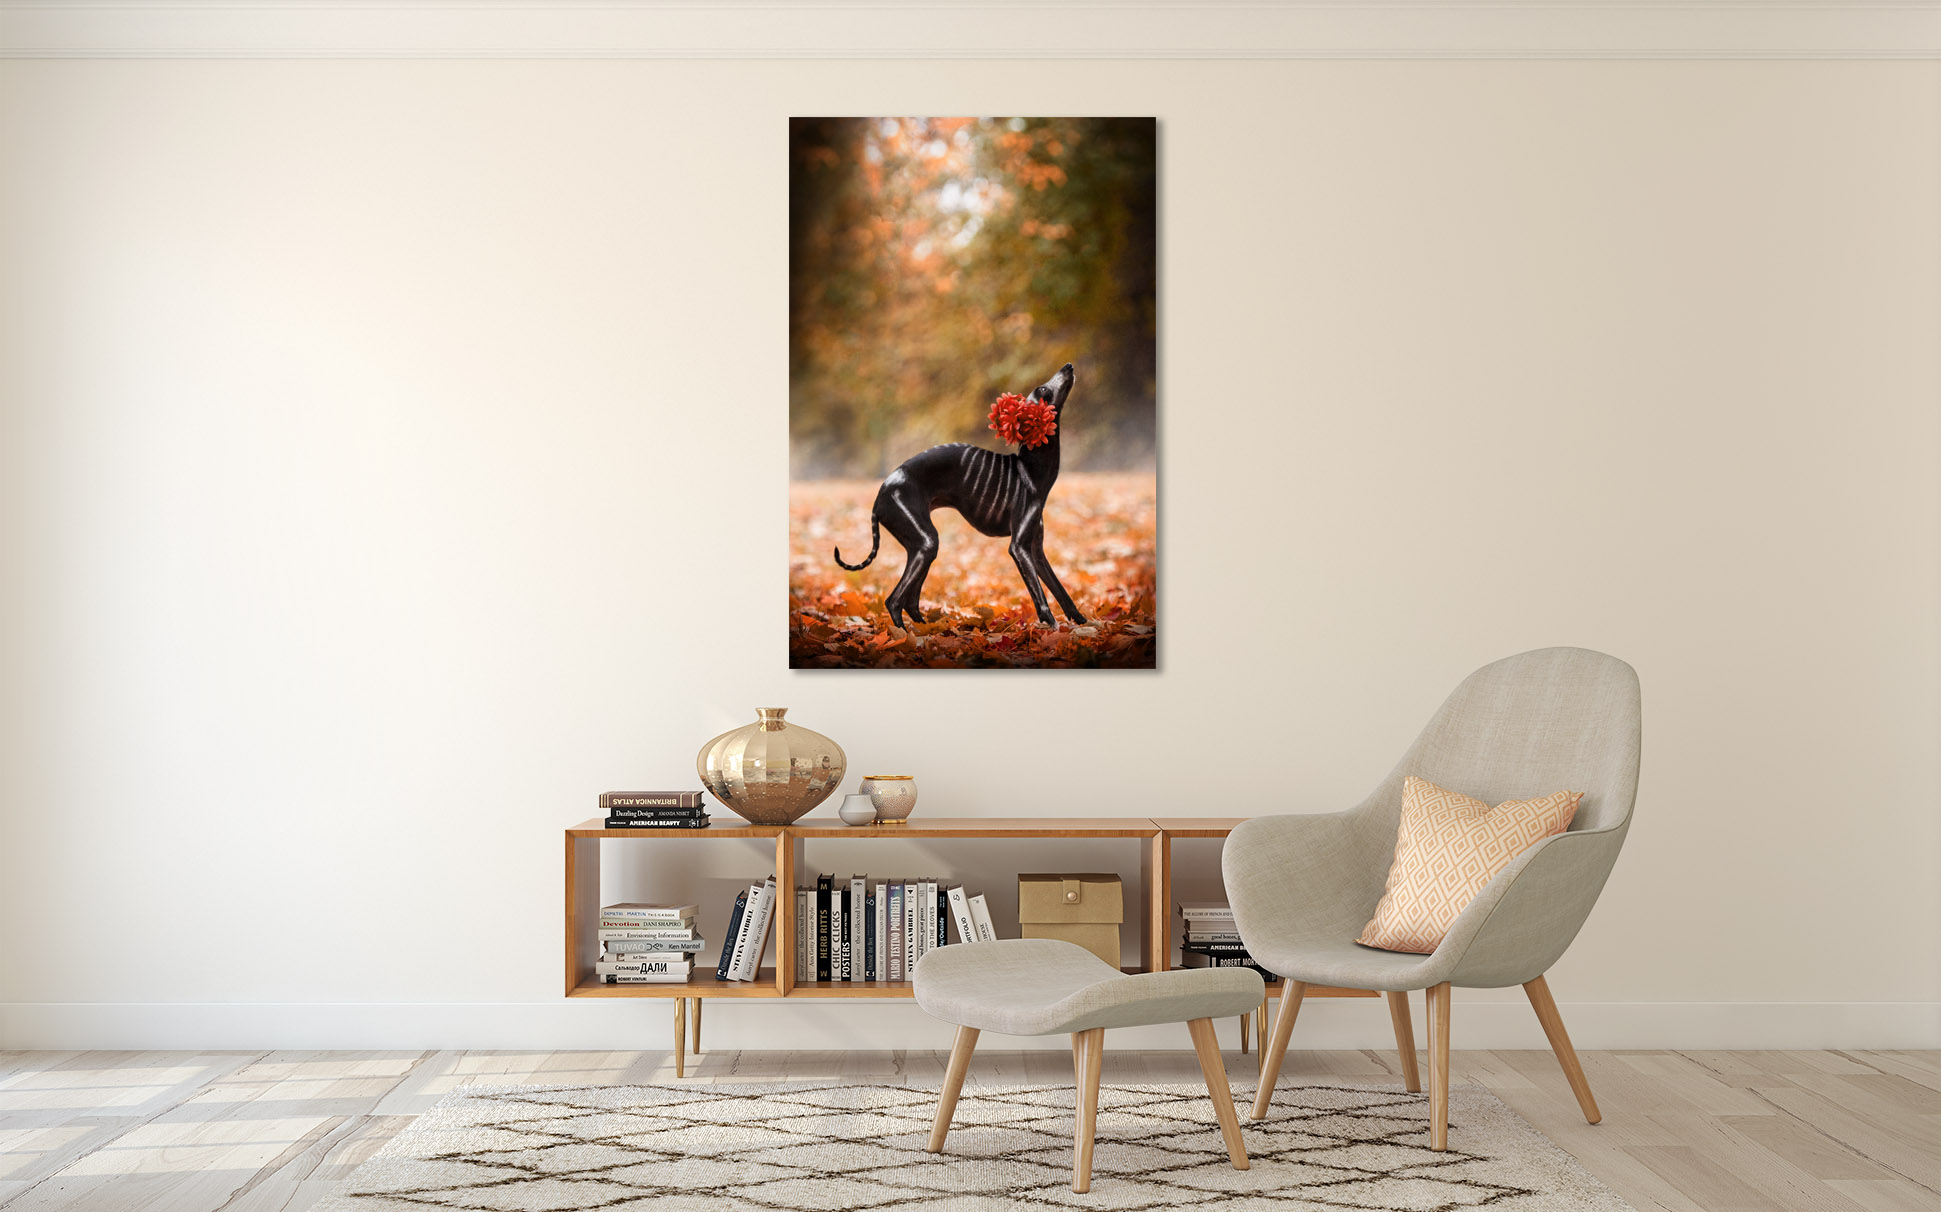 original-wall-art-dog-photography.jpg